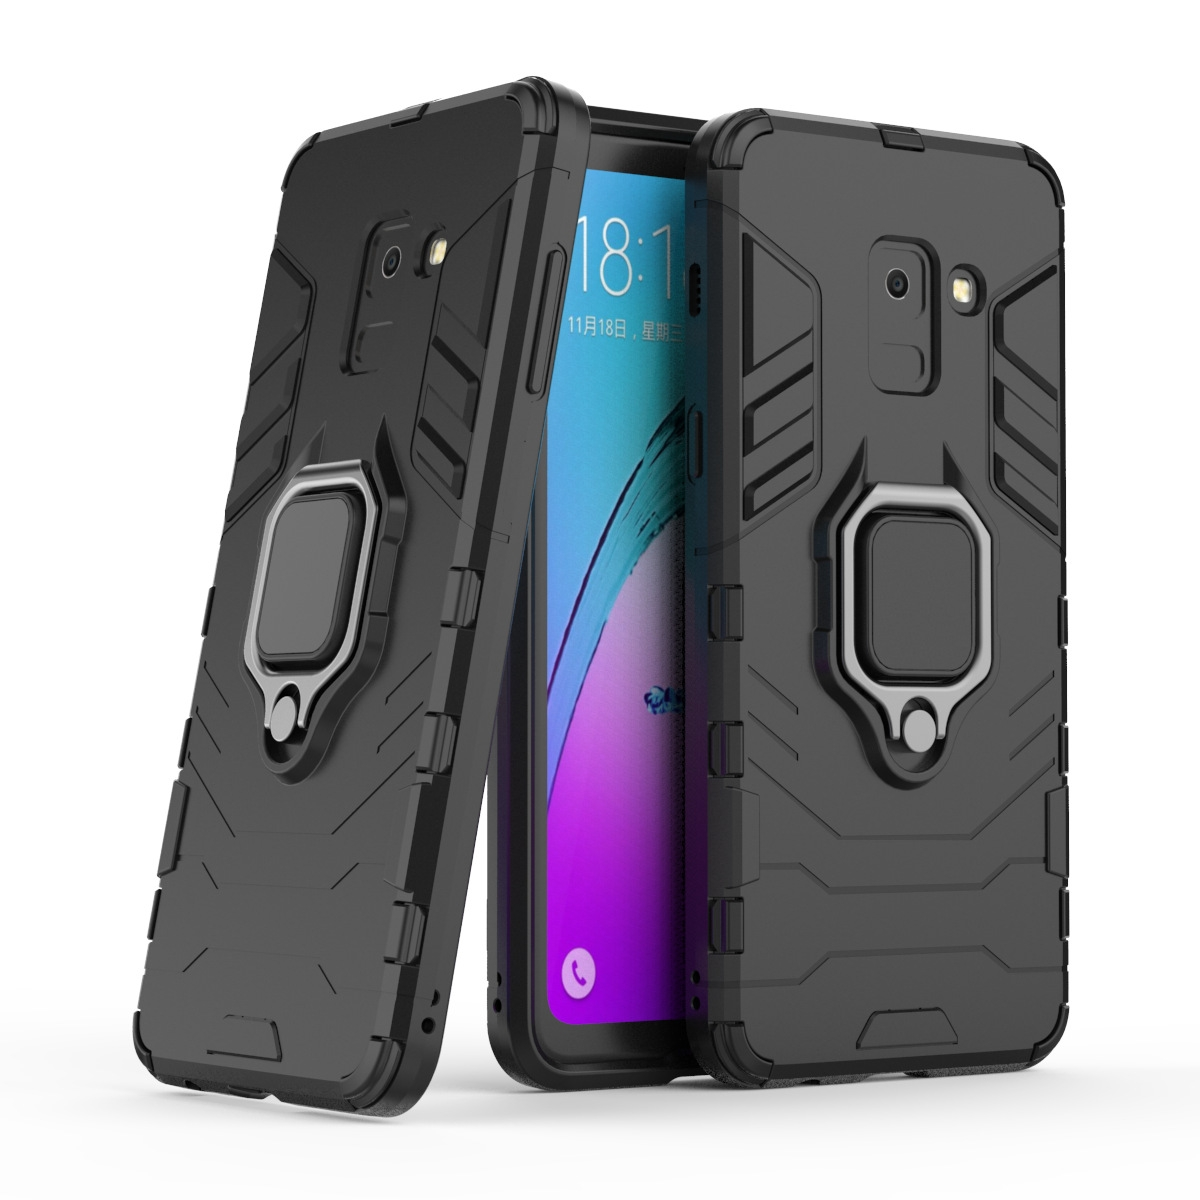 new product f10e7 e16fe Shinwo Samsung Galaxy A8 2018 Case Rugged Armor [Drop-protection] with Car  Magnetic Ring Holder black for Samsung Galaxy A8 2018